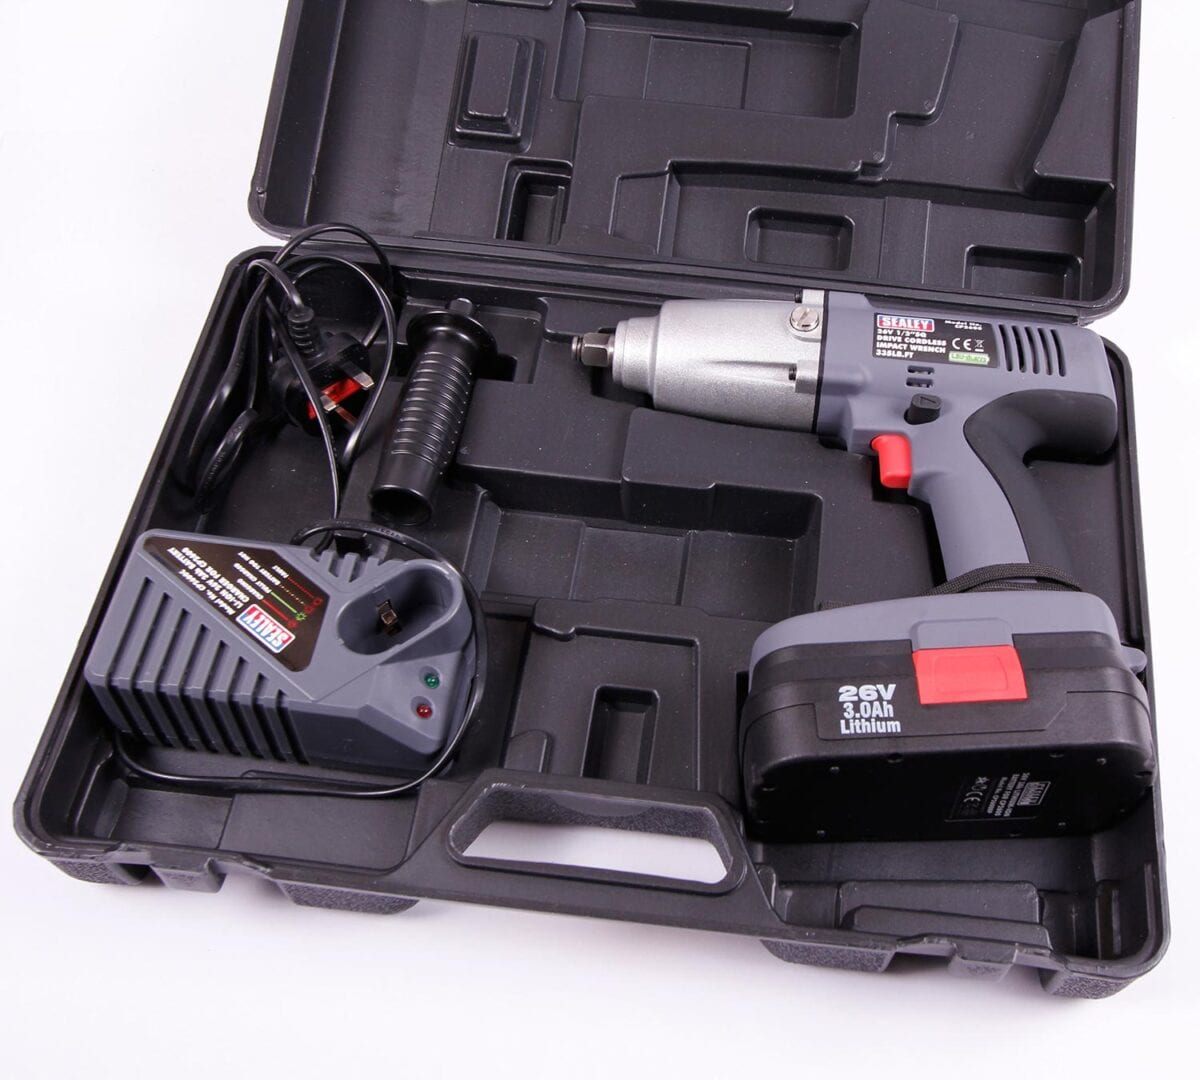 Sealey-Impact-Wrench-CP2600-003